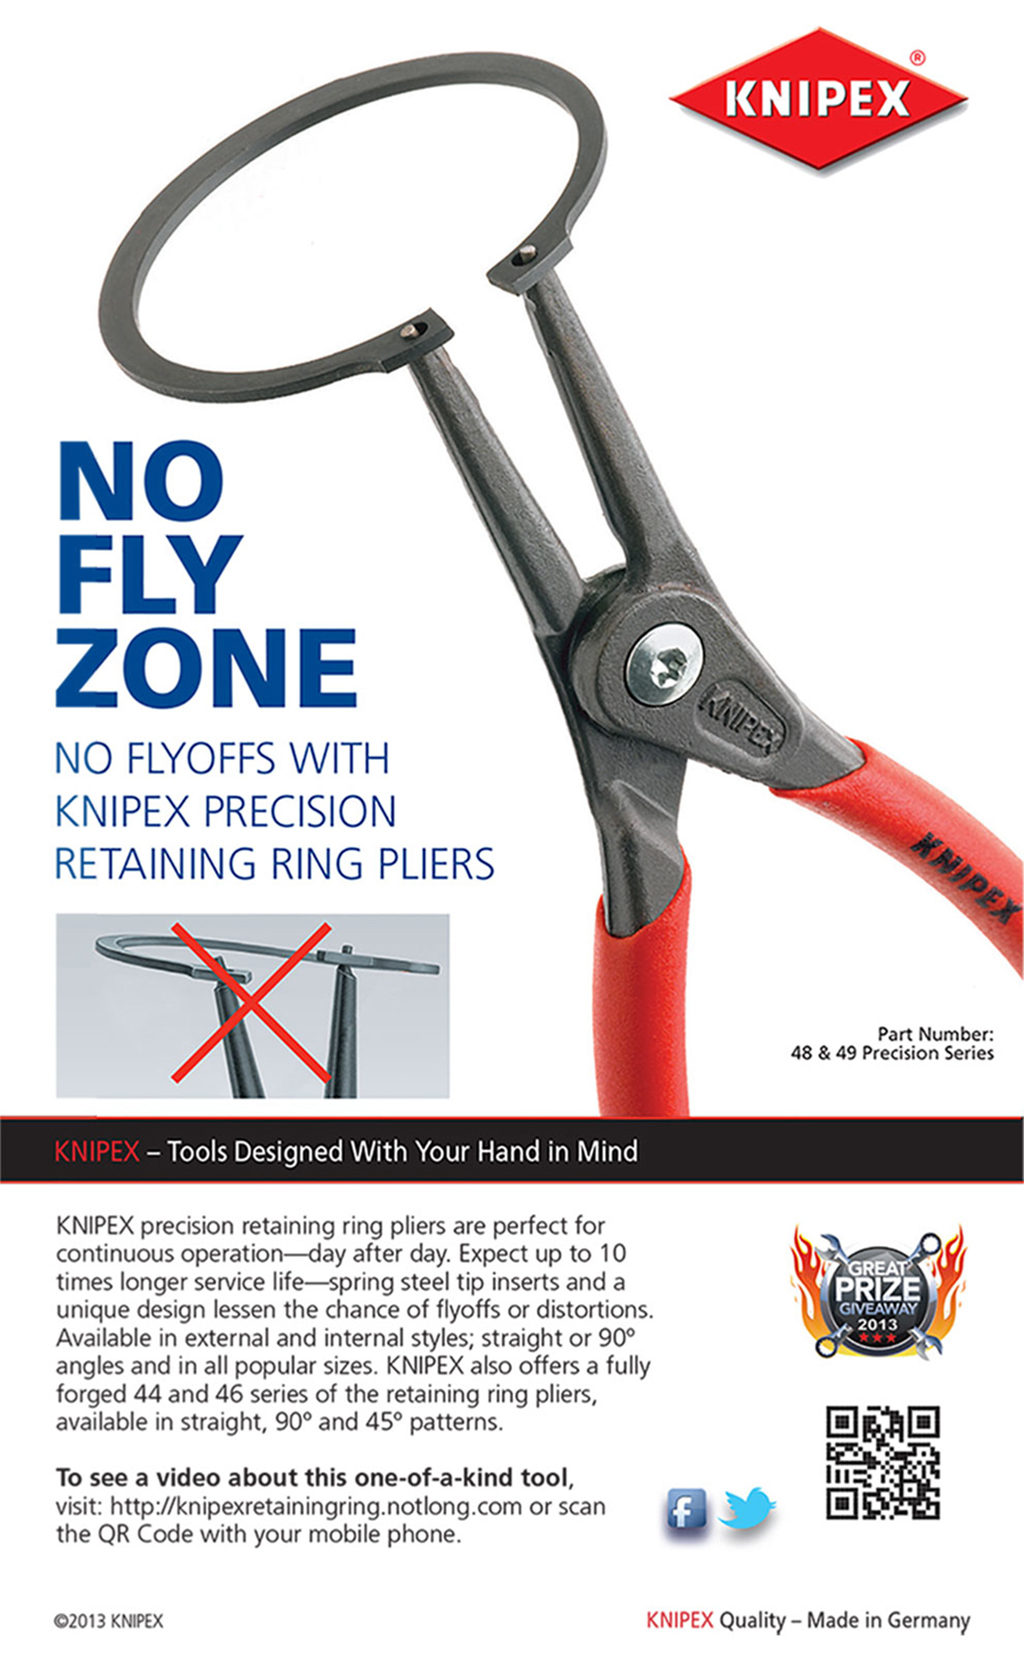 KNIPEX — No Fly Zone